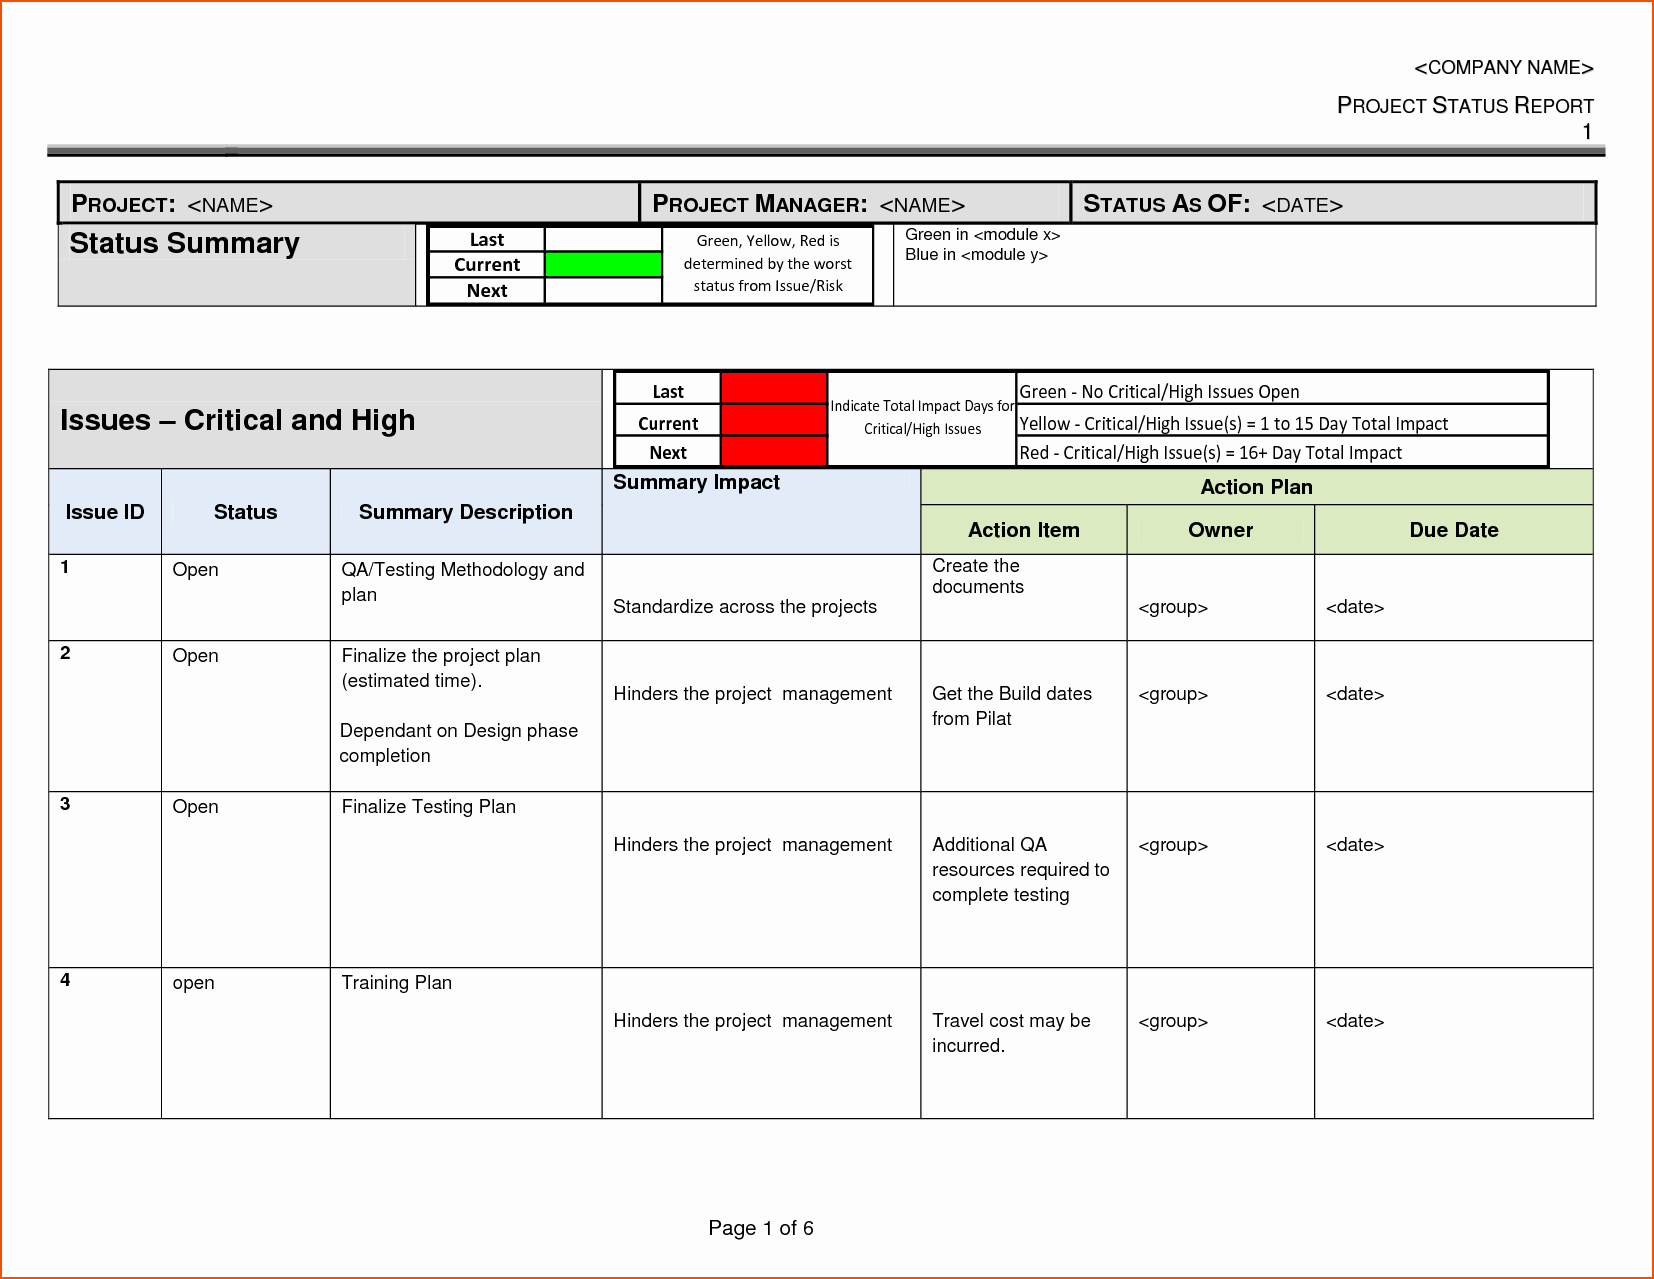 Project Status Report Sample Excel 7 Project Status